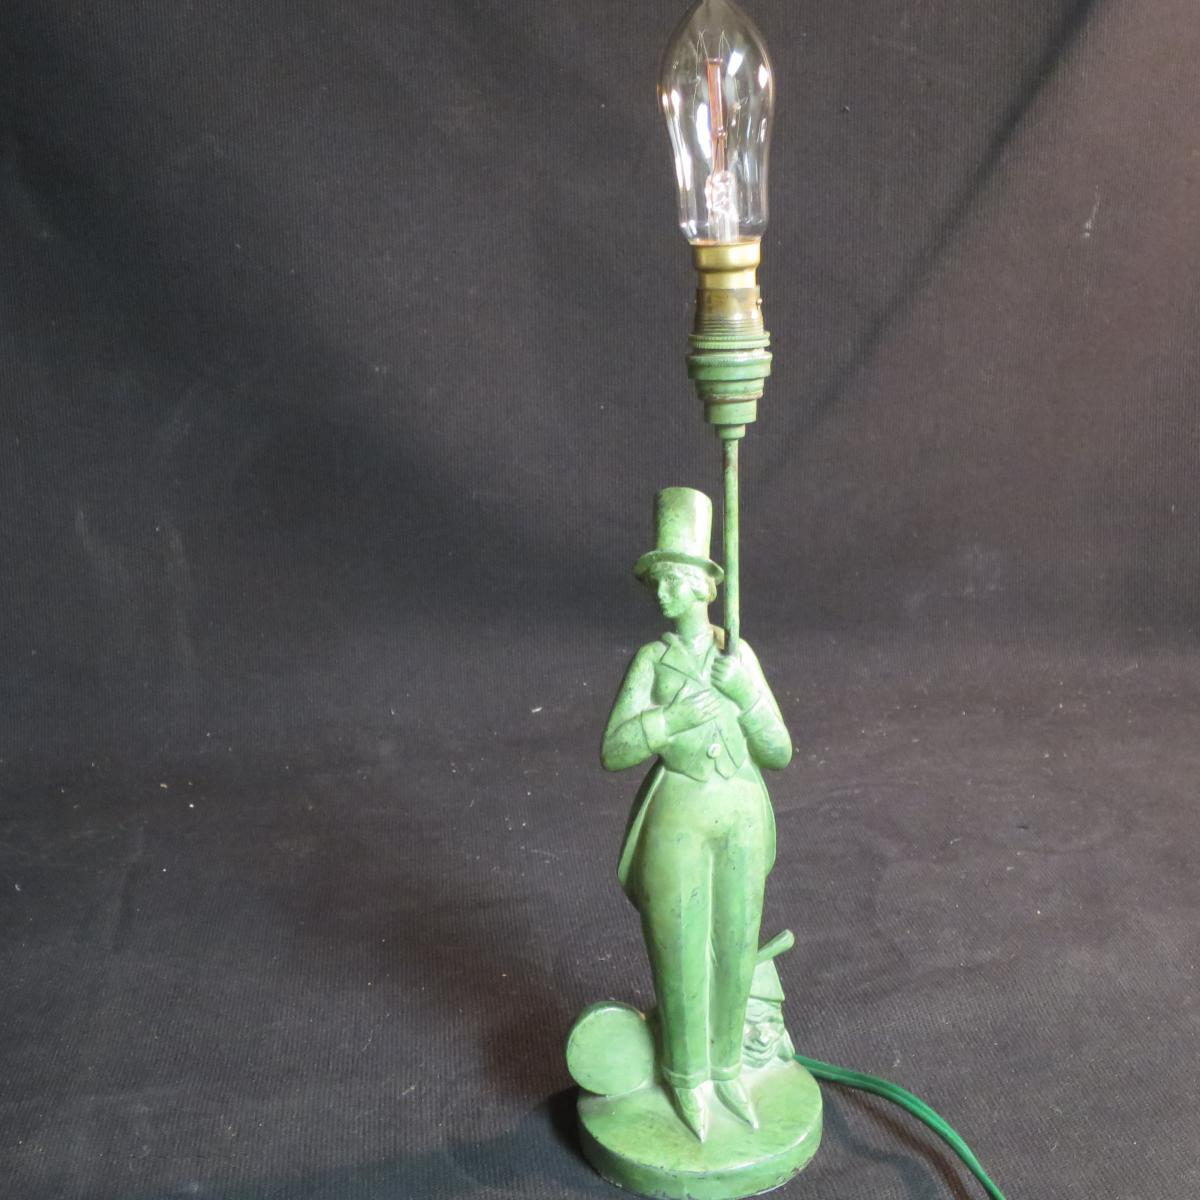 Lamp Sculpture Art Deco Signed Jc Darvel Cirque Comedien In Top Hat Shaped-photo-1